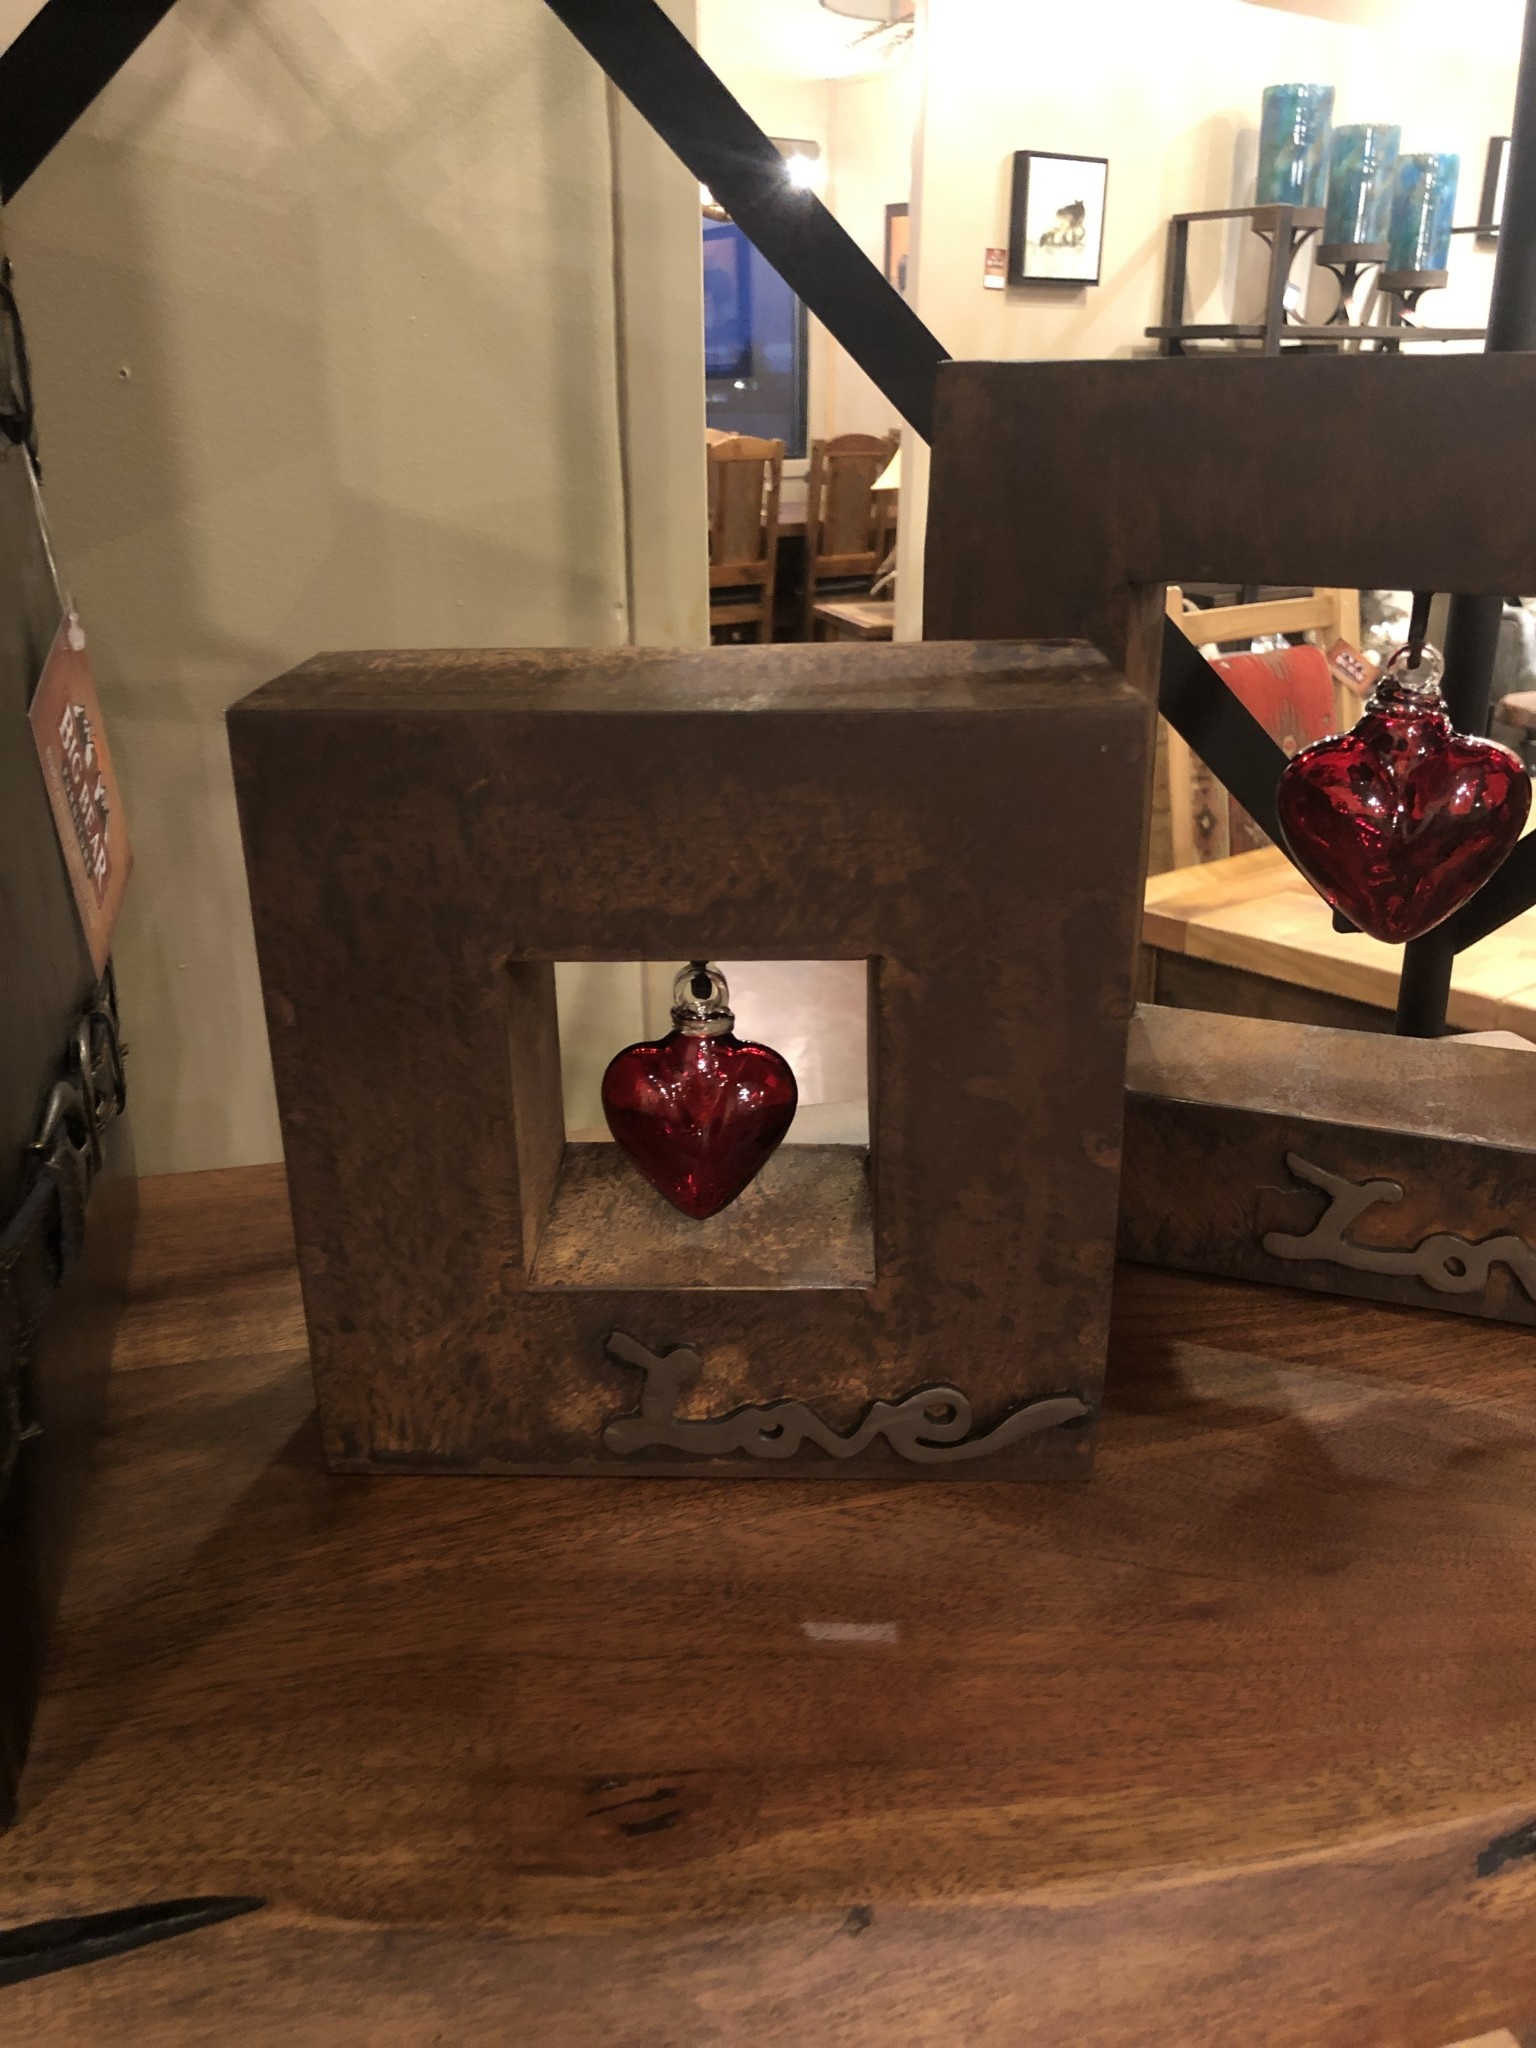 Artisans Love Shadow Box Sm W/Baby Red Heart